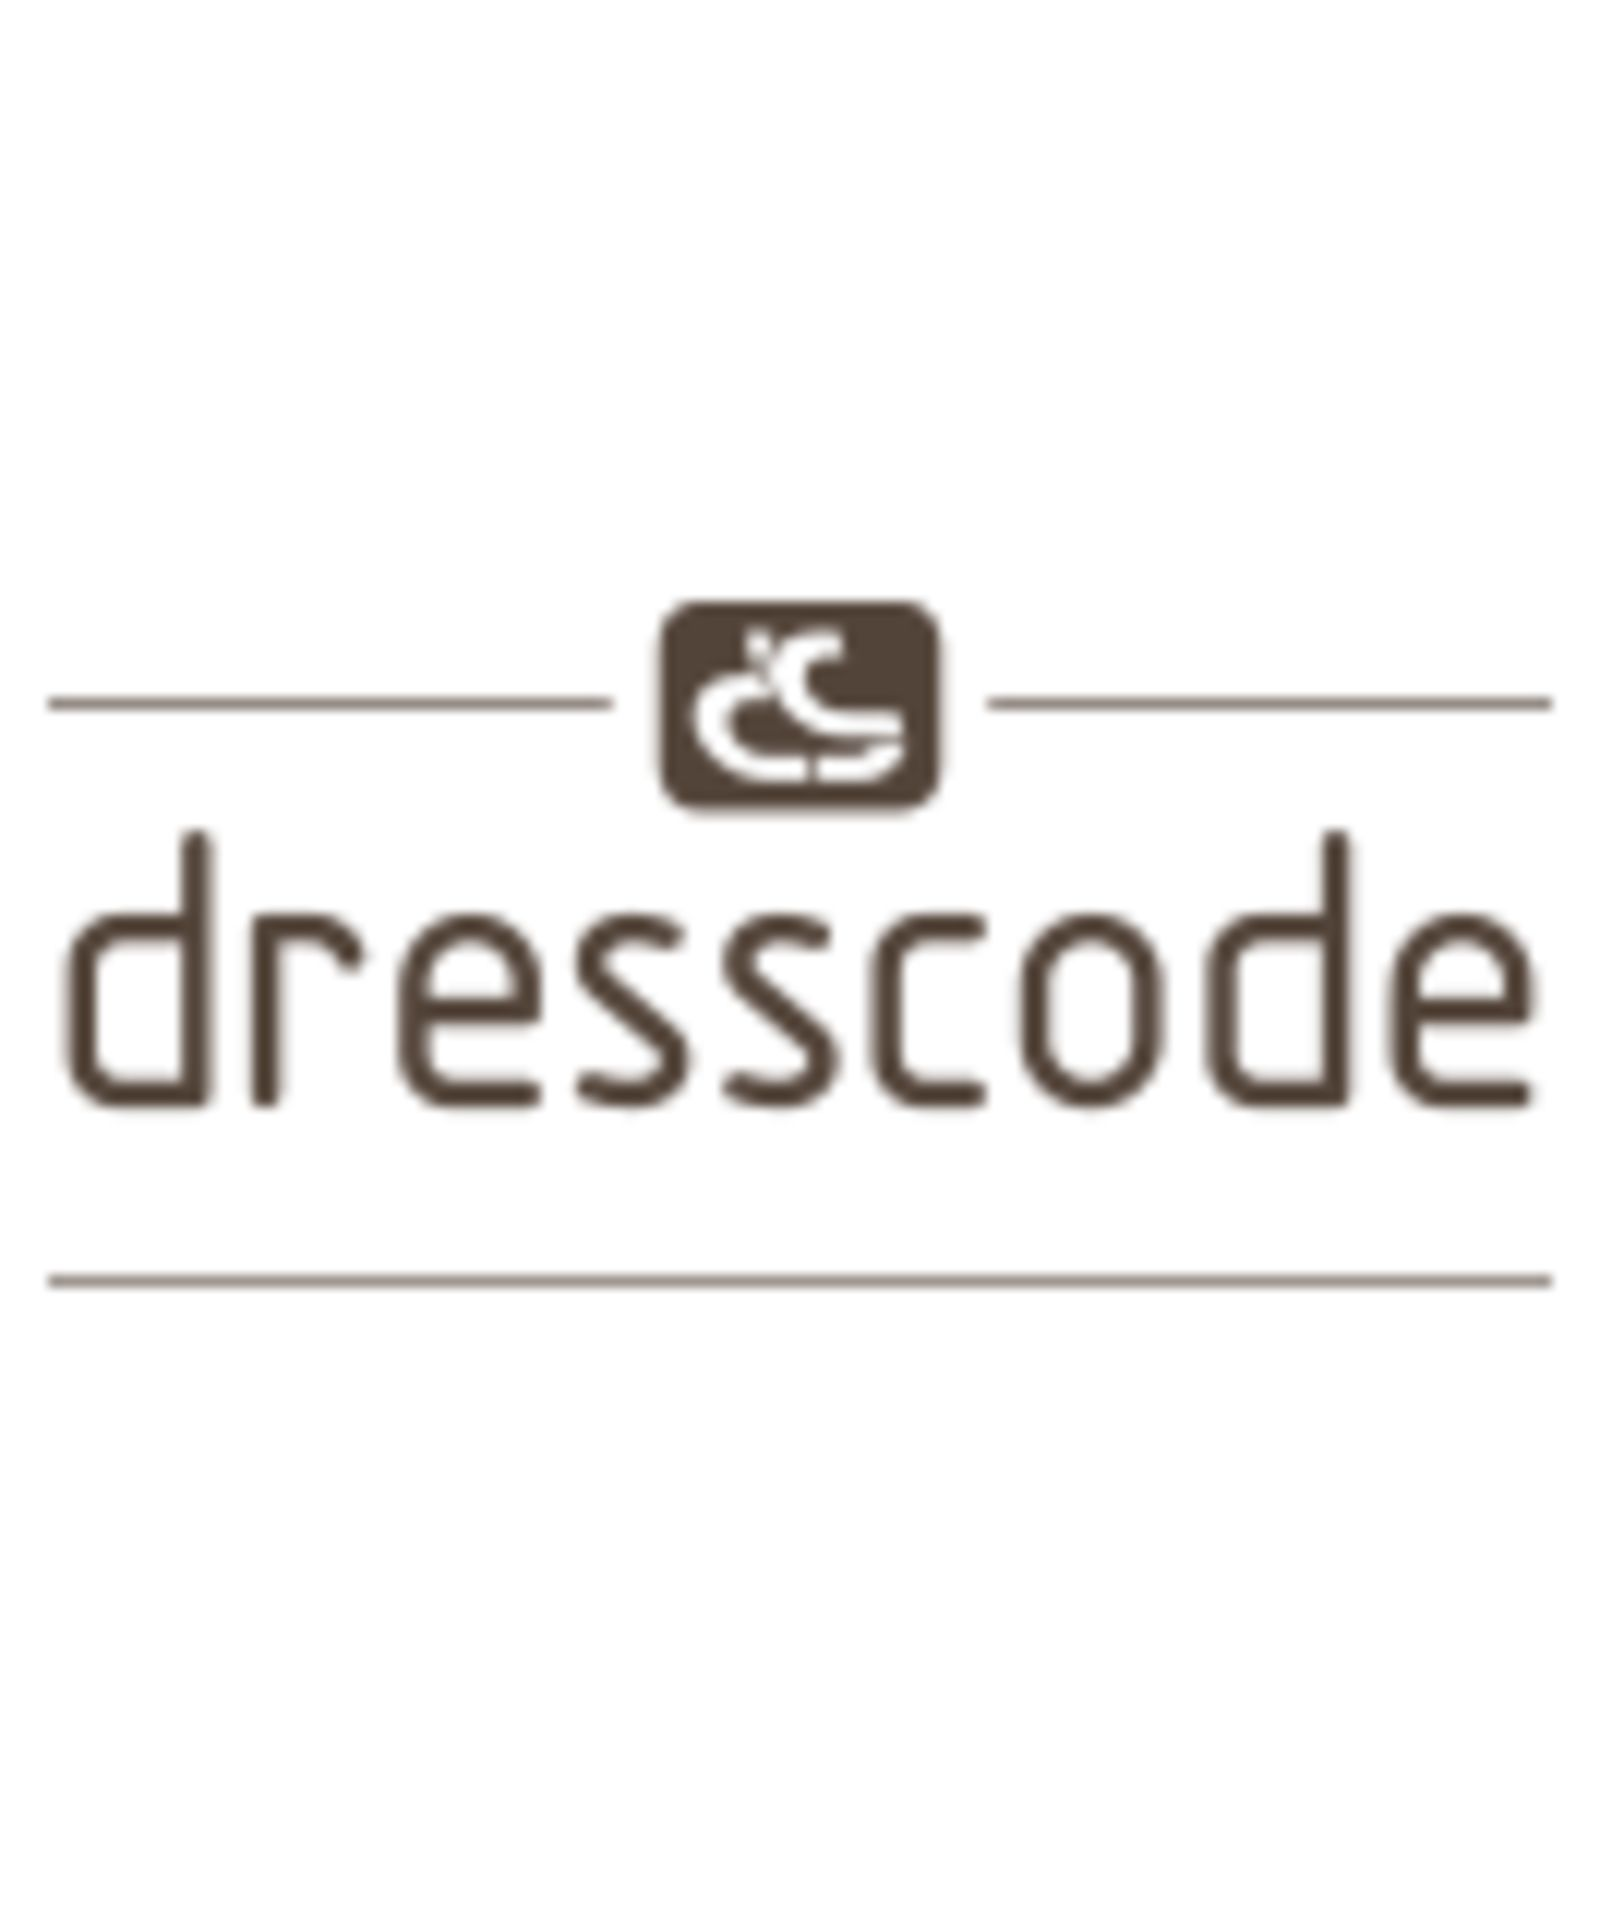 Dresscode in Ansbach